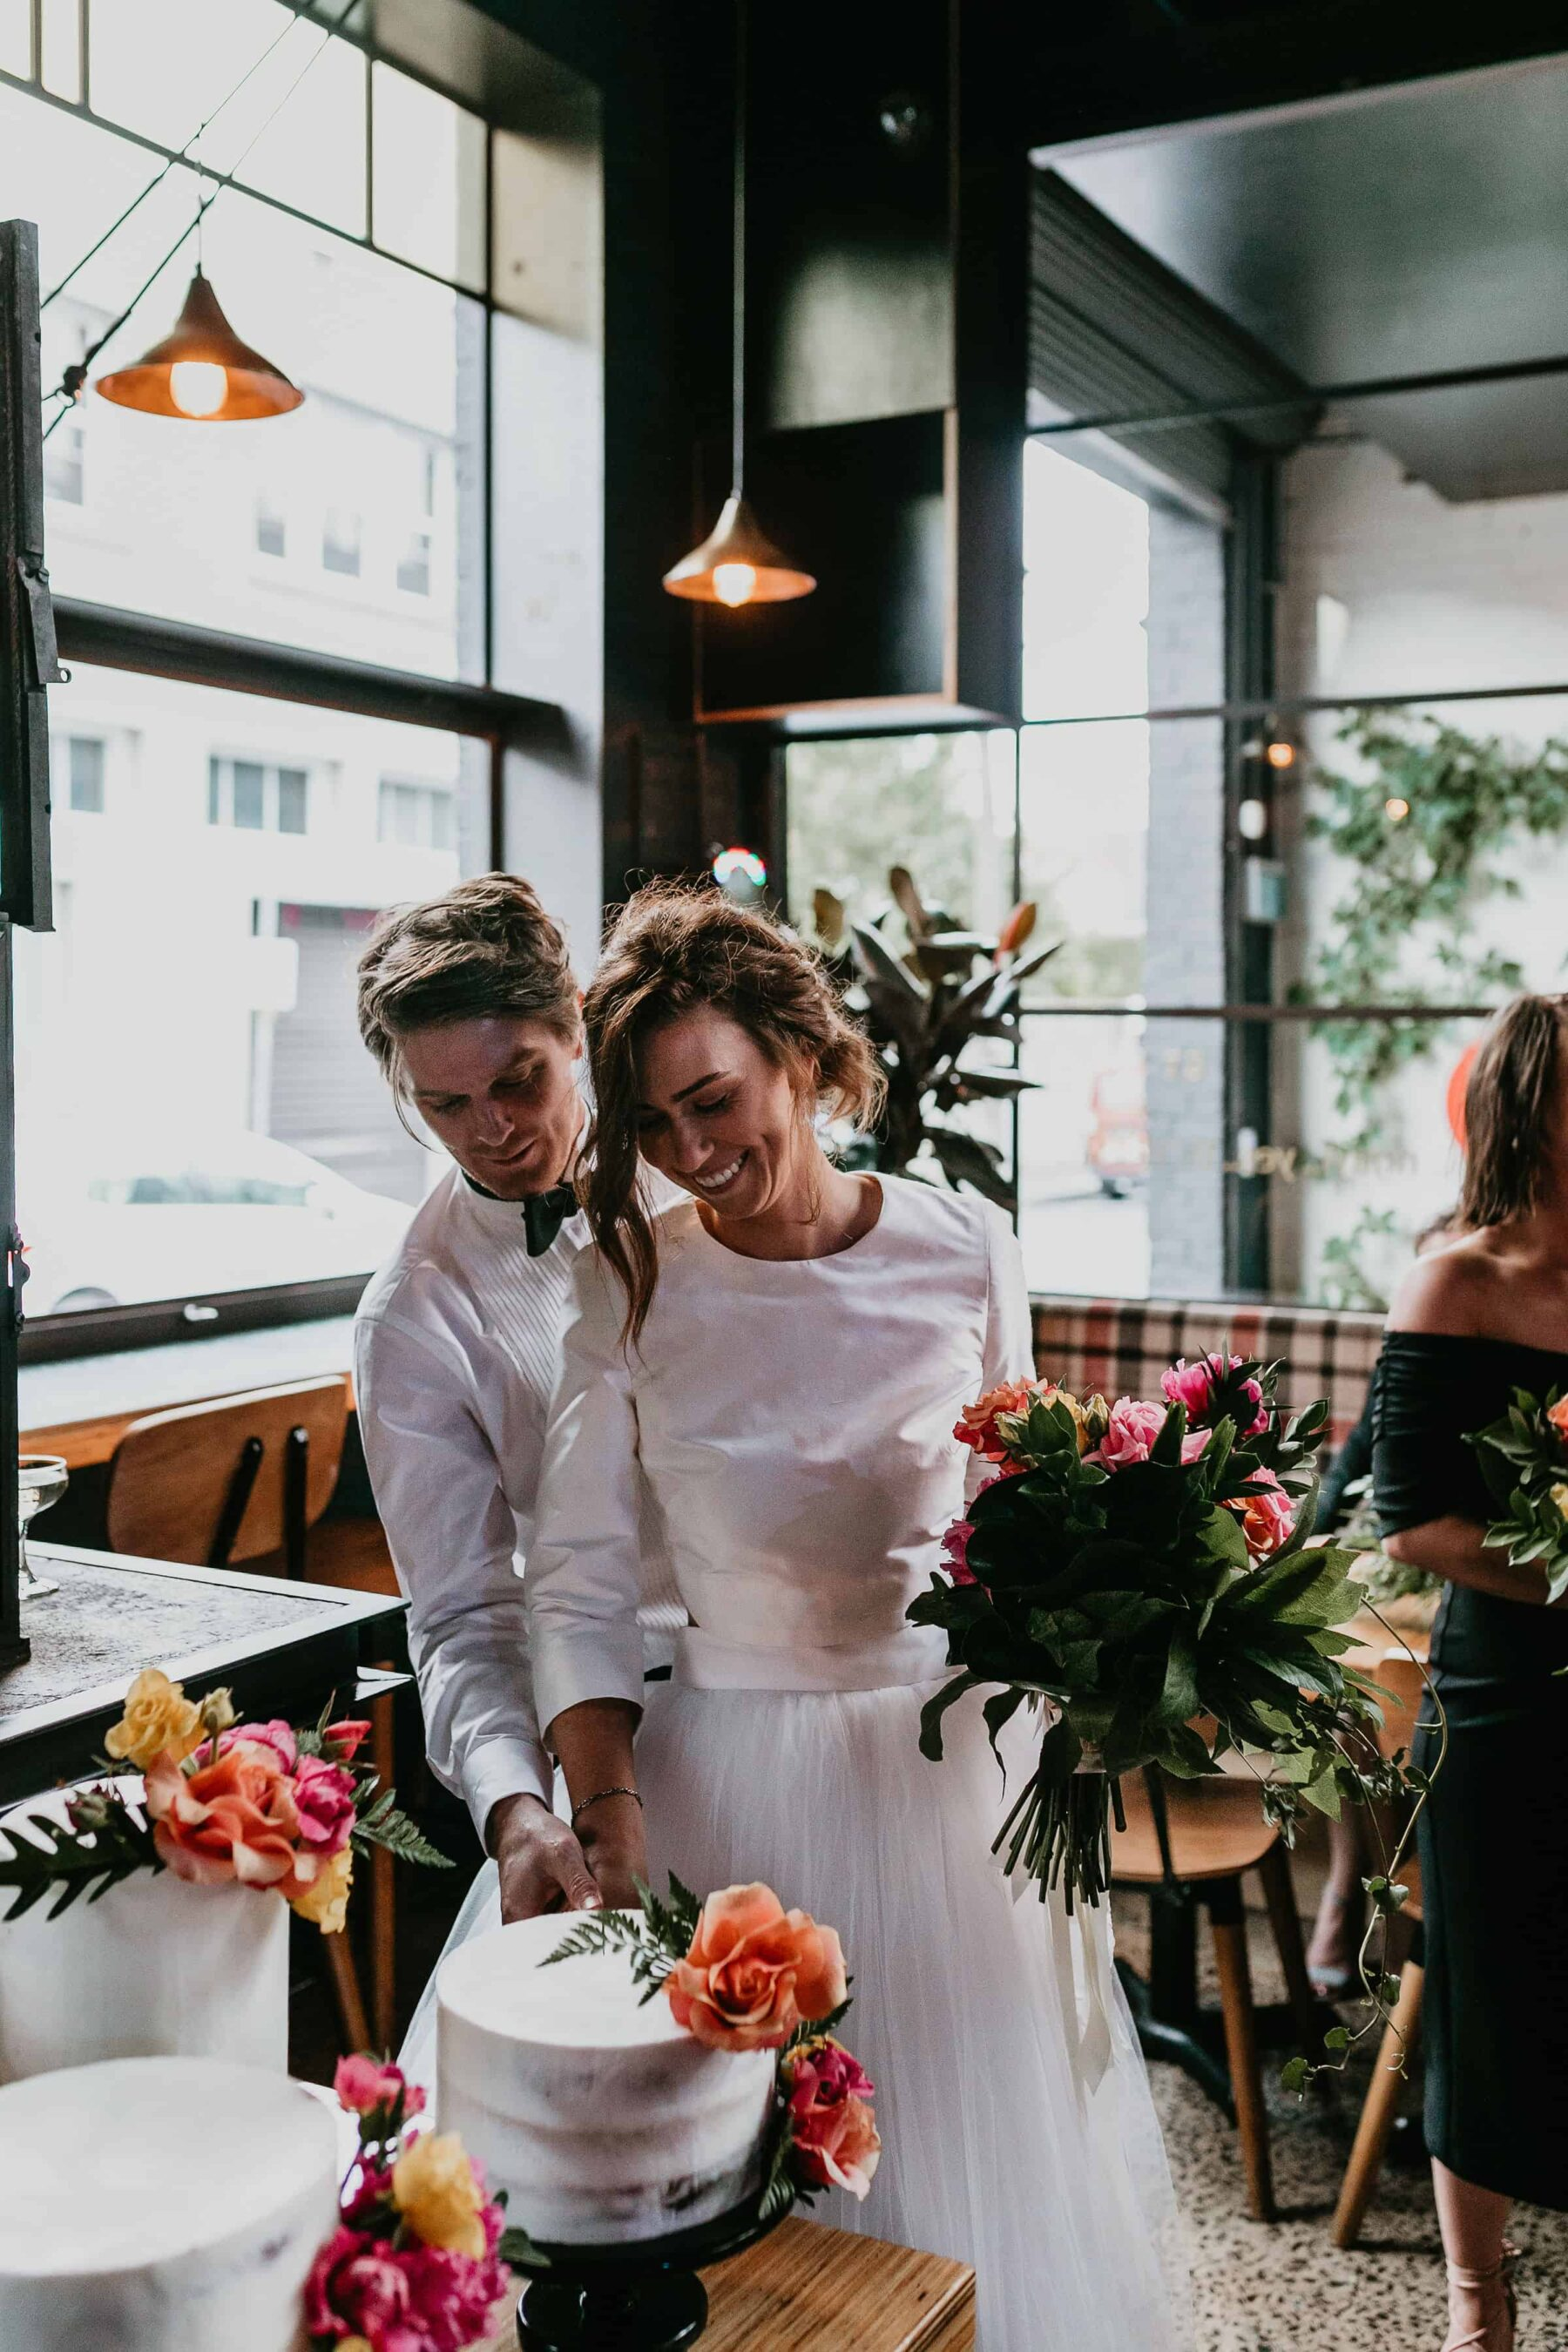 vibrant and industrial Melbourne wedding at Rupert on Rupert in Collingwood